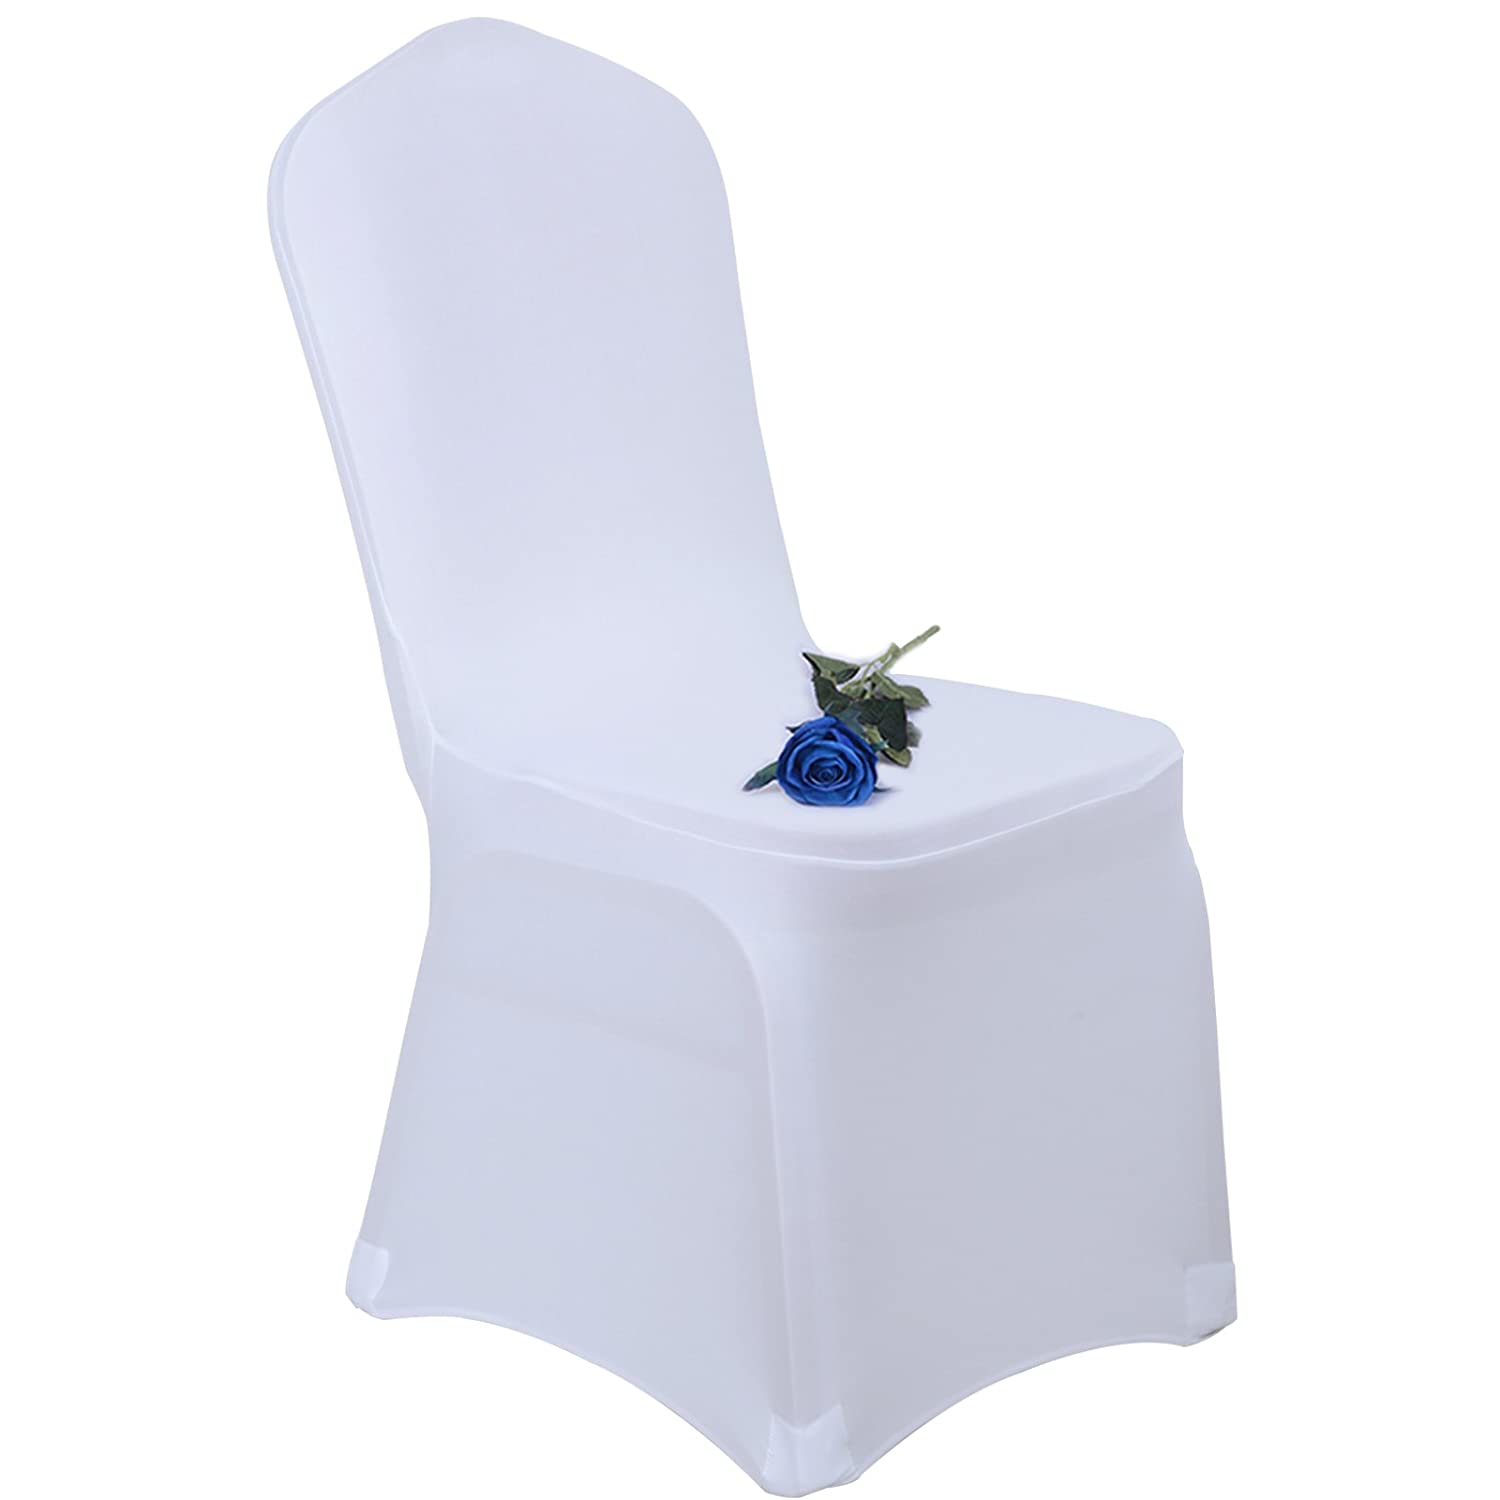 Voilamart White Chair Covers Pack of 100 Spandex Lycra Cover Universal Stretch Slipcovers Wedding Banquet Party Anniversary Decoration